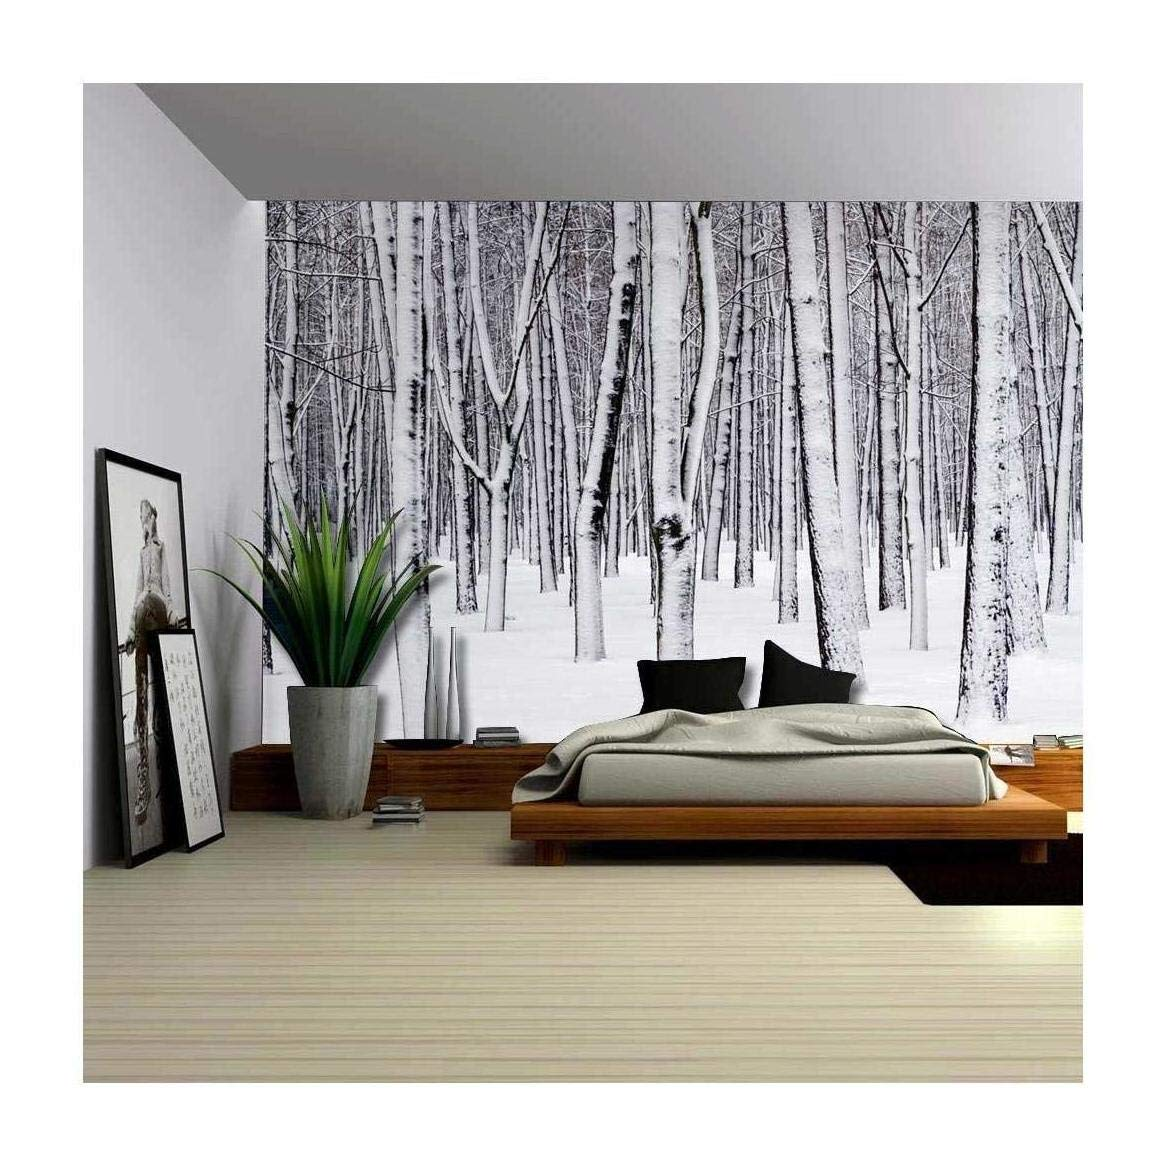 winter murals amazon comwall26 mural of a forest covered in a blanket of snow wall mural,